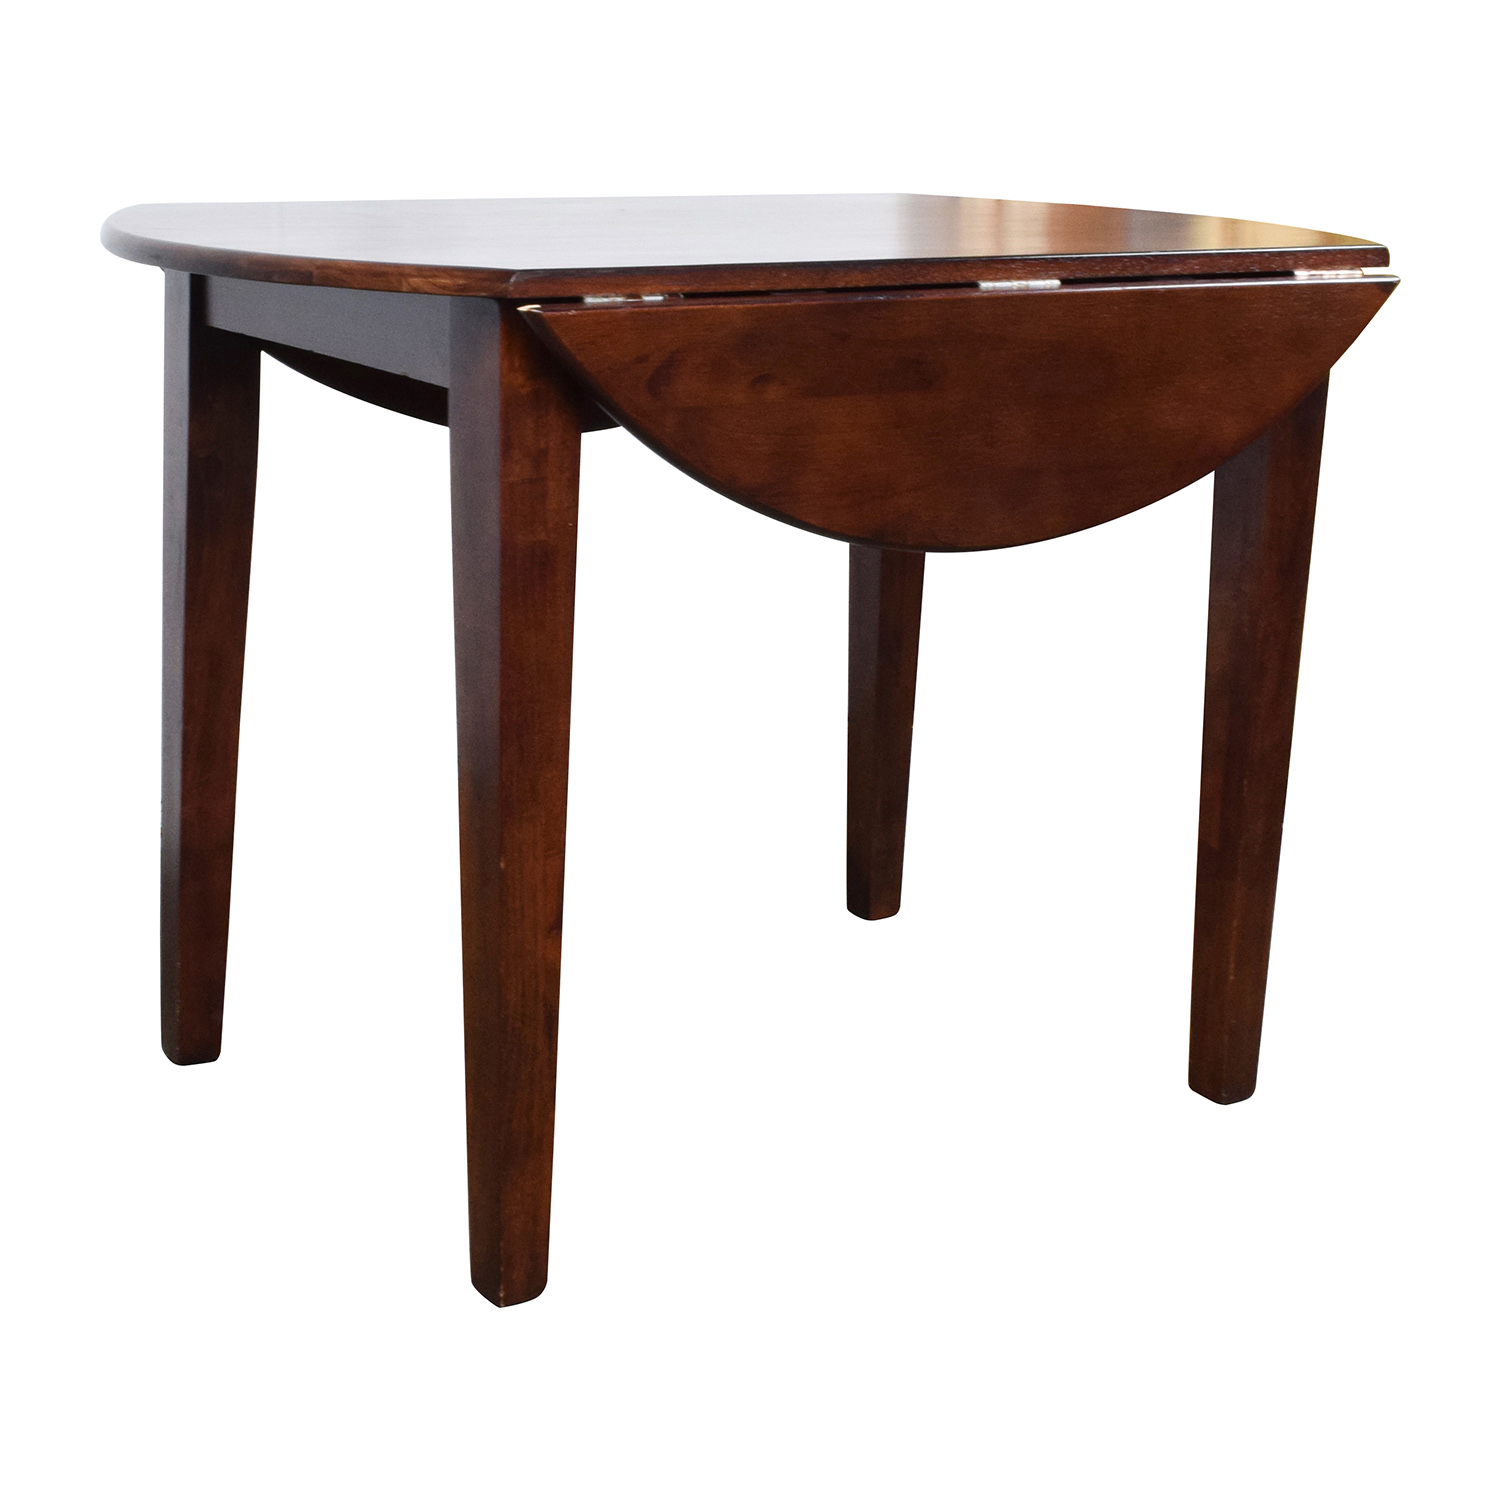 90 Off Round Wood Table With Folding Leaves Tables